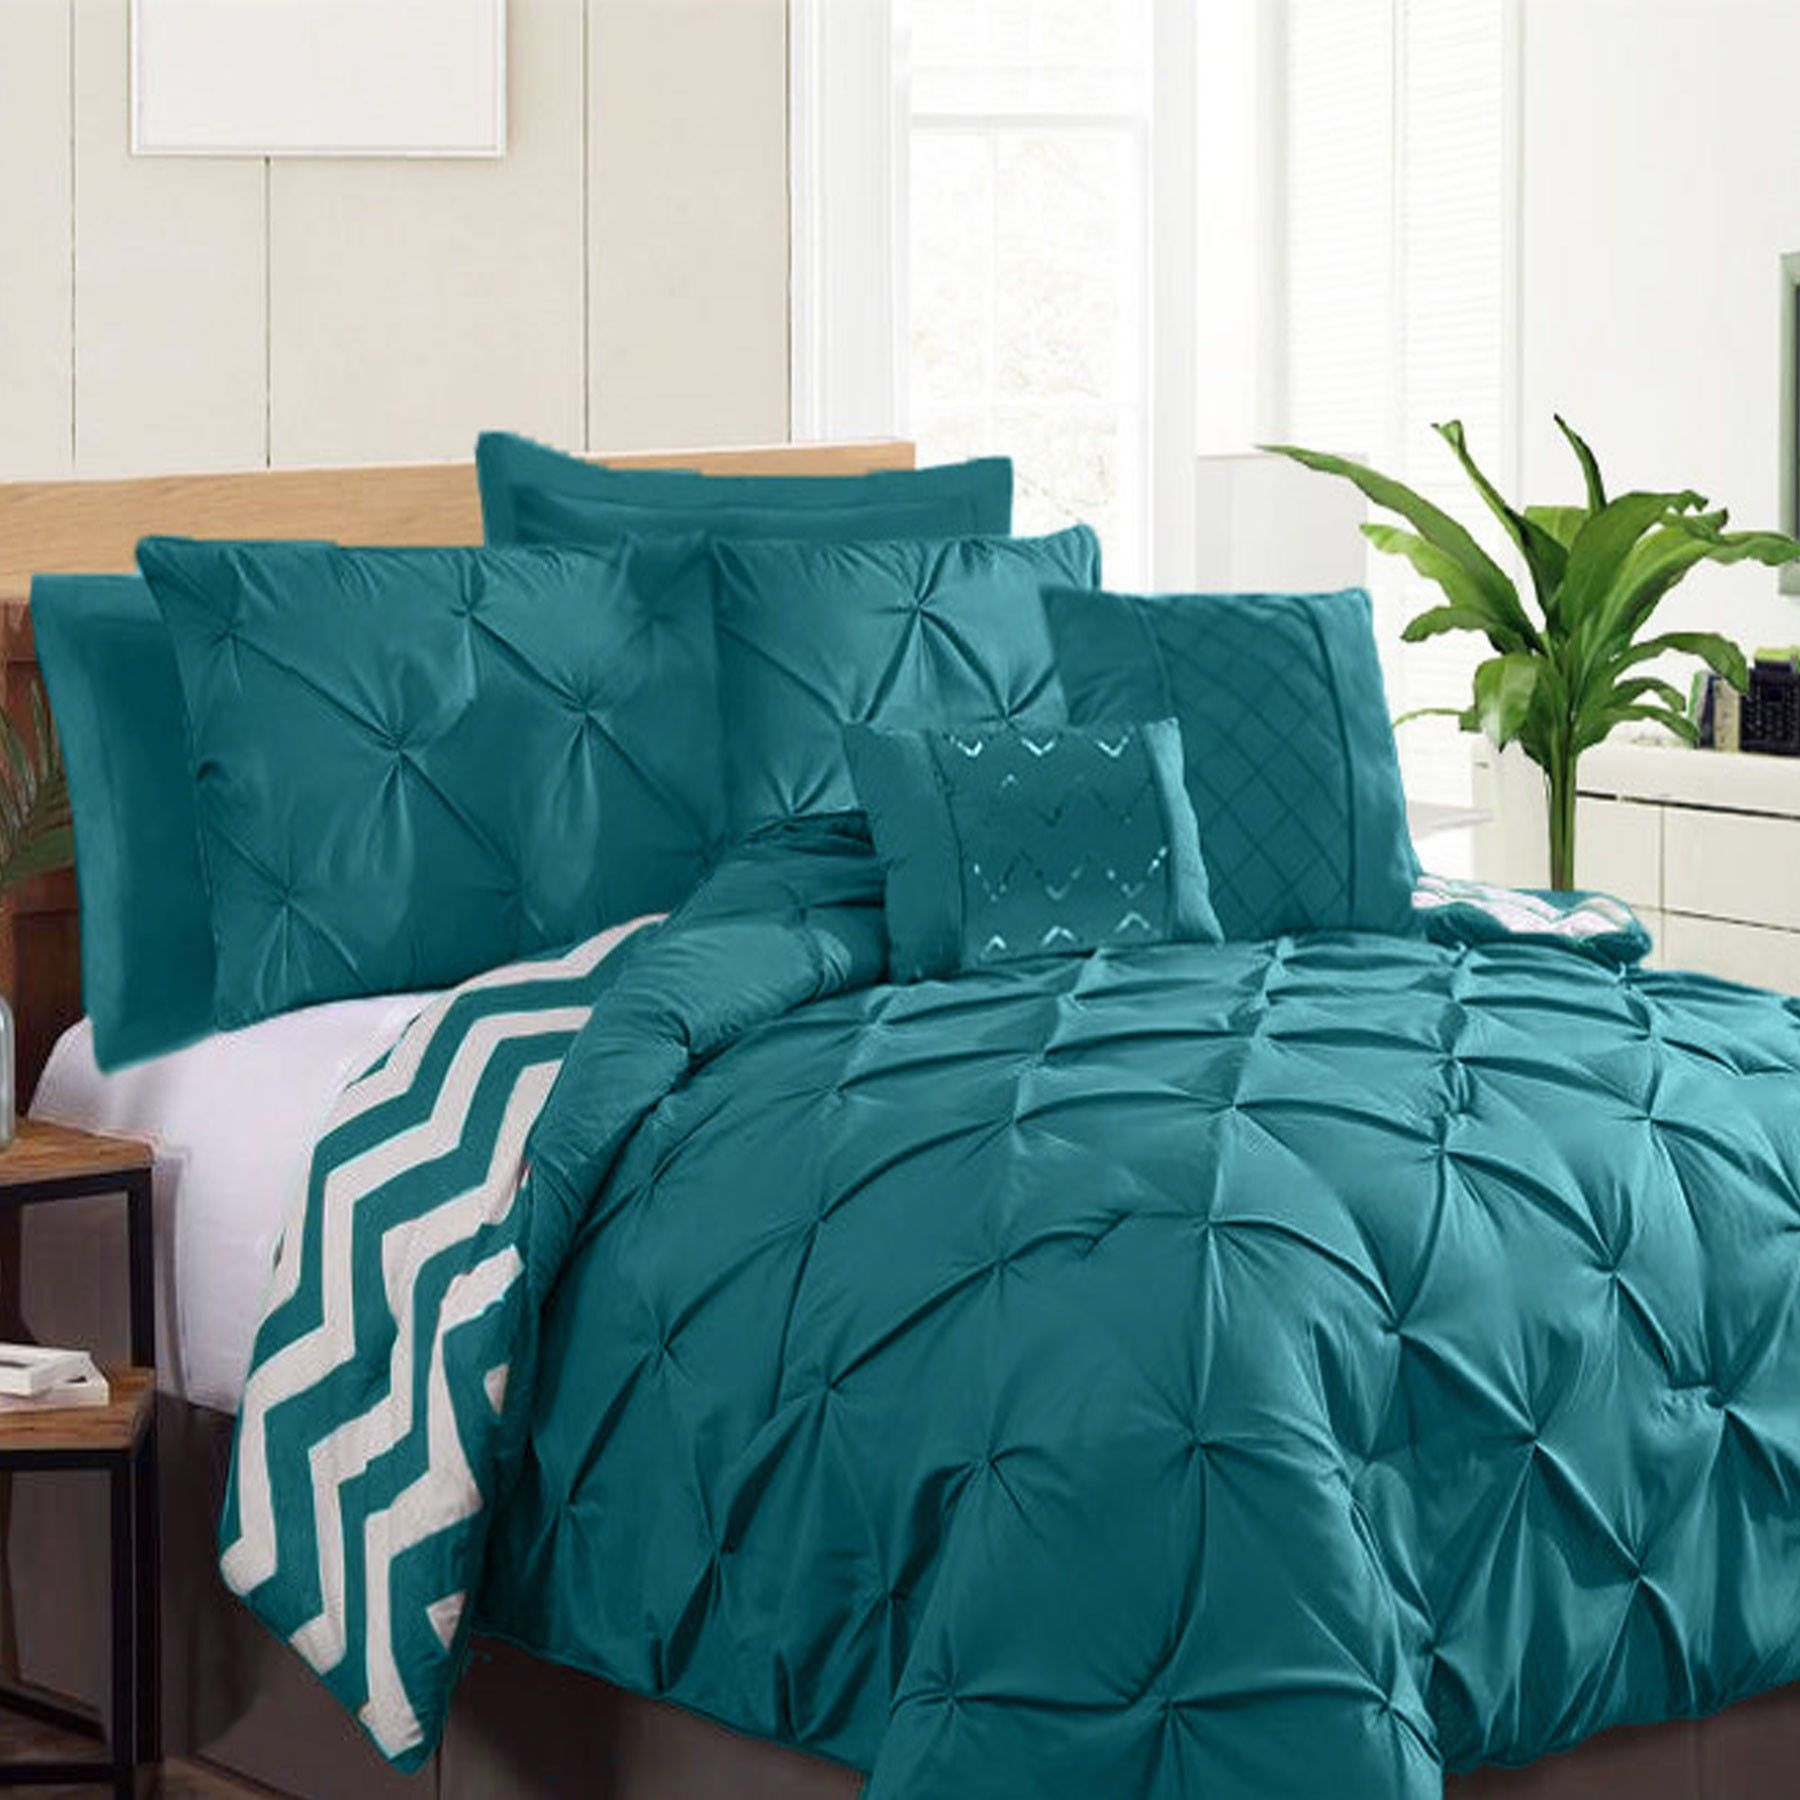 pleat in ip valentina piece pinch com walmart set chic bed home comforter bag a